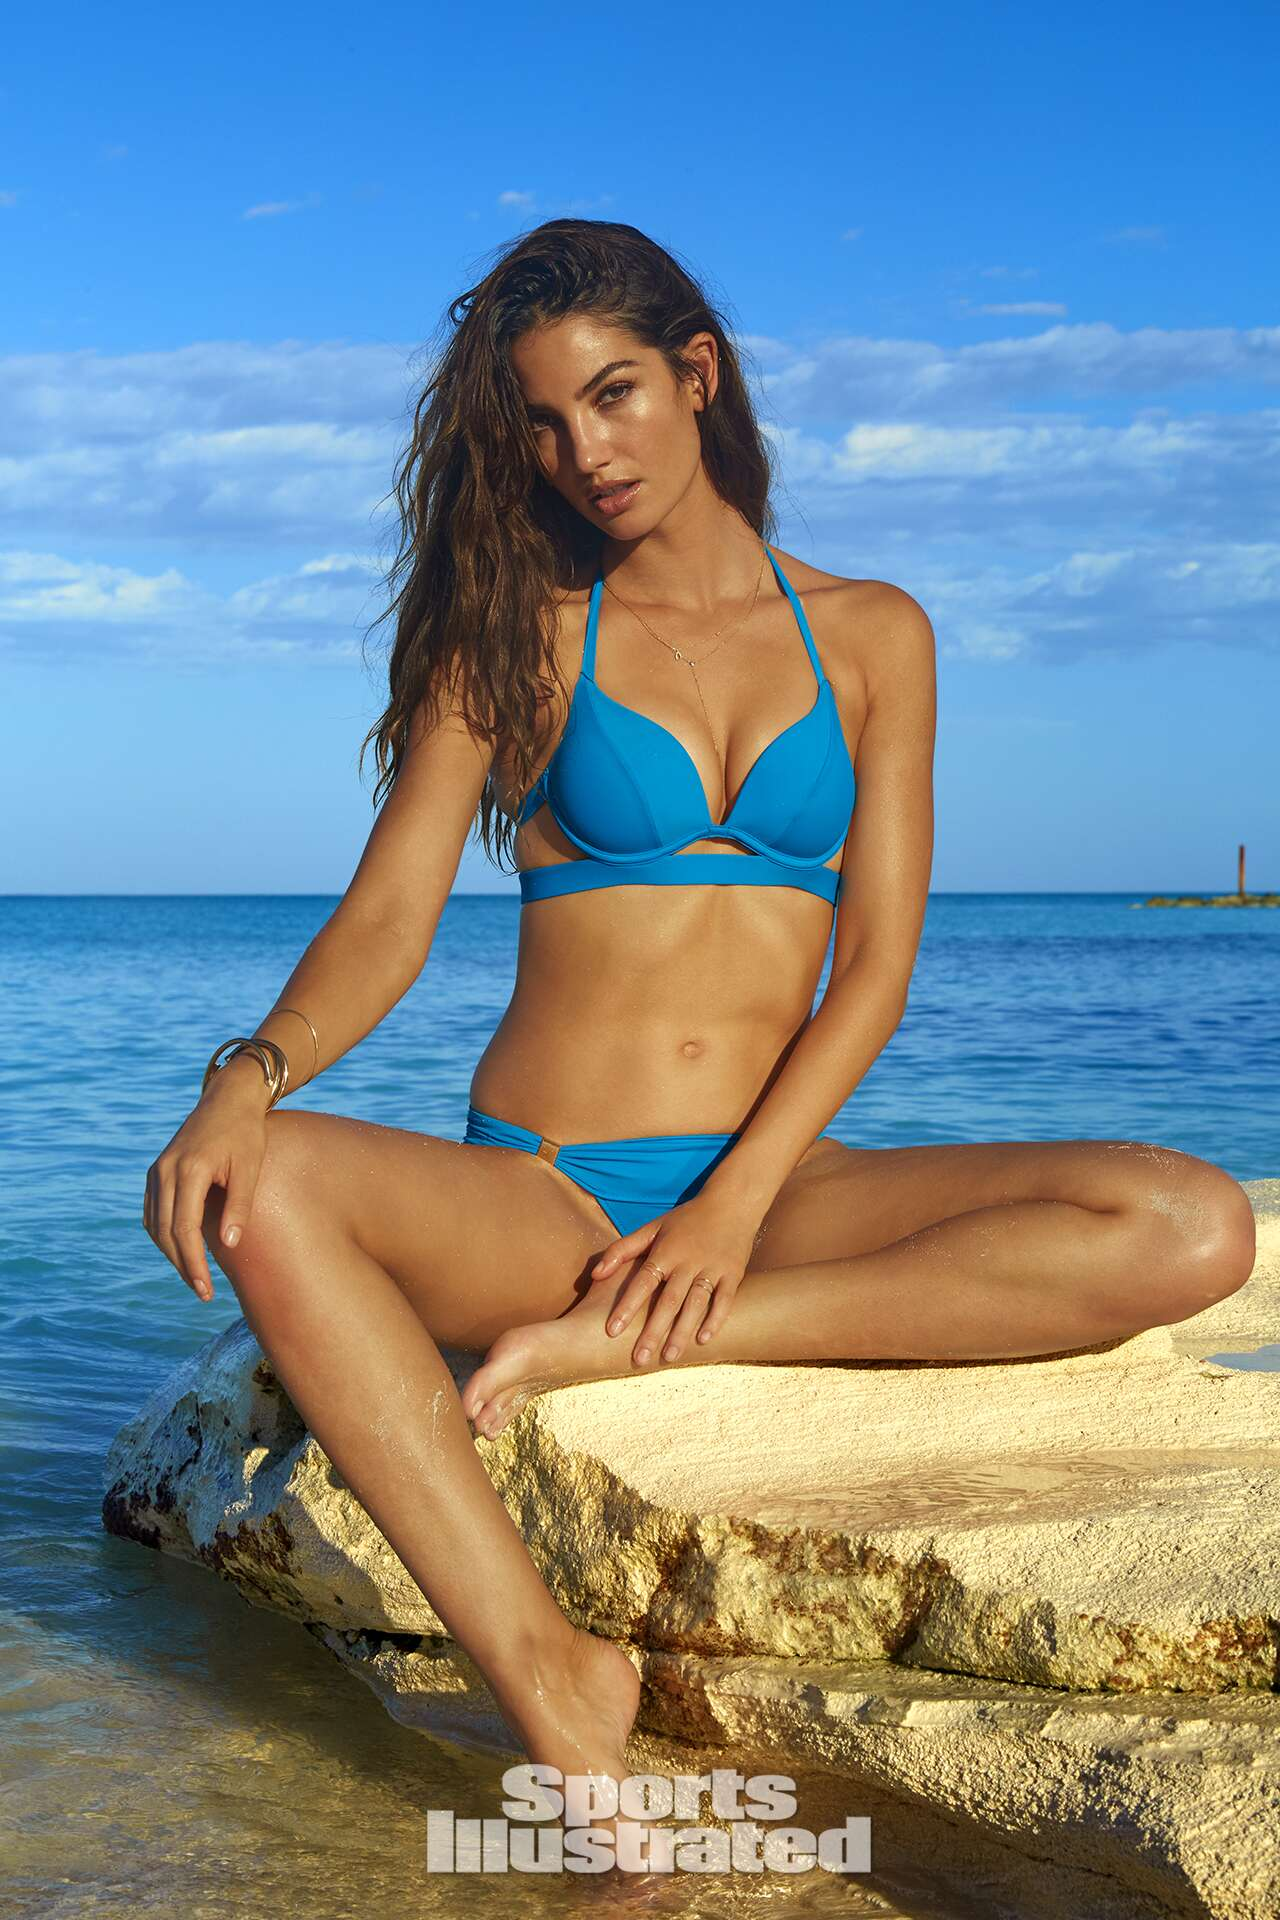 <p>Lily Aldridge was photographed by James Macari in Turks &amp; Caicos. Swimsuit by Victoria's Secret.</p>